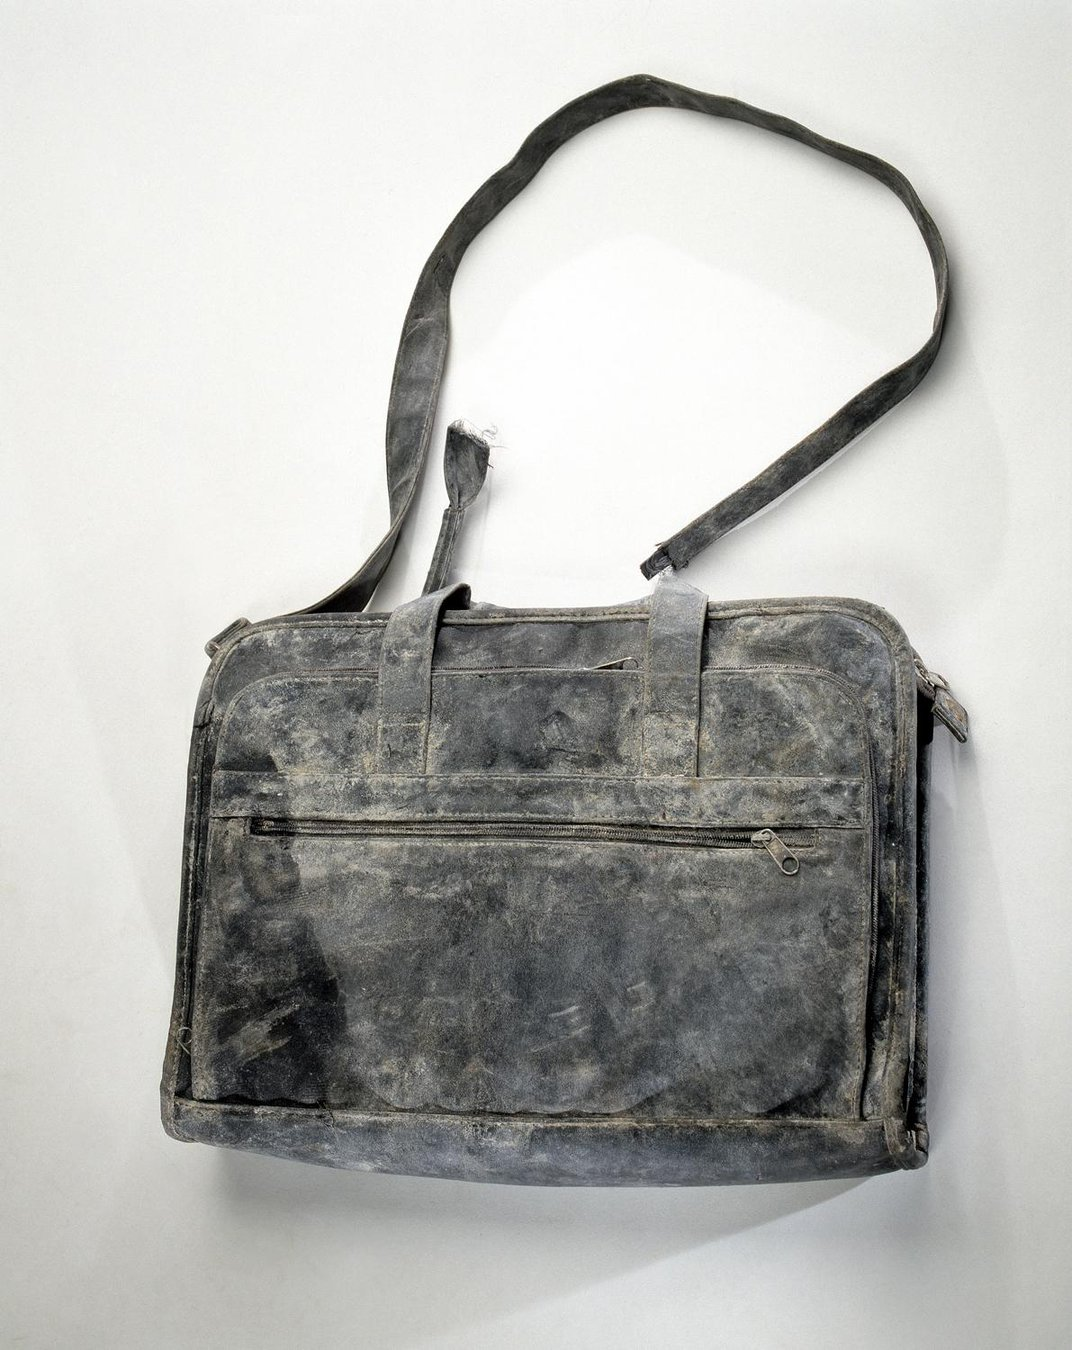 Thirty-One Smithsonian Artifacts That Tell the Story of 9/11